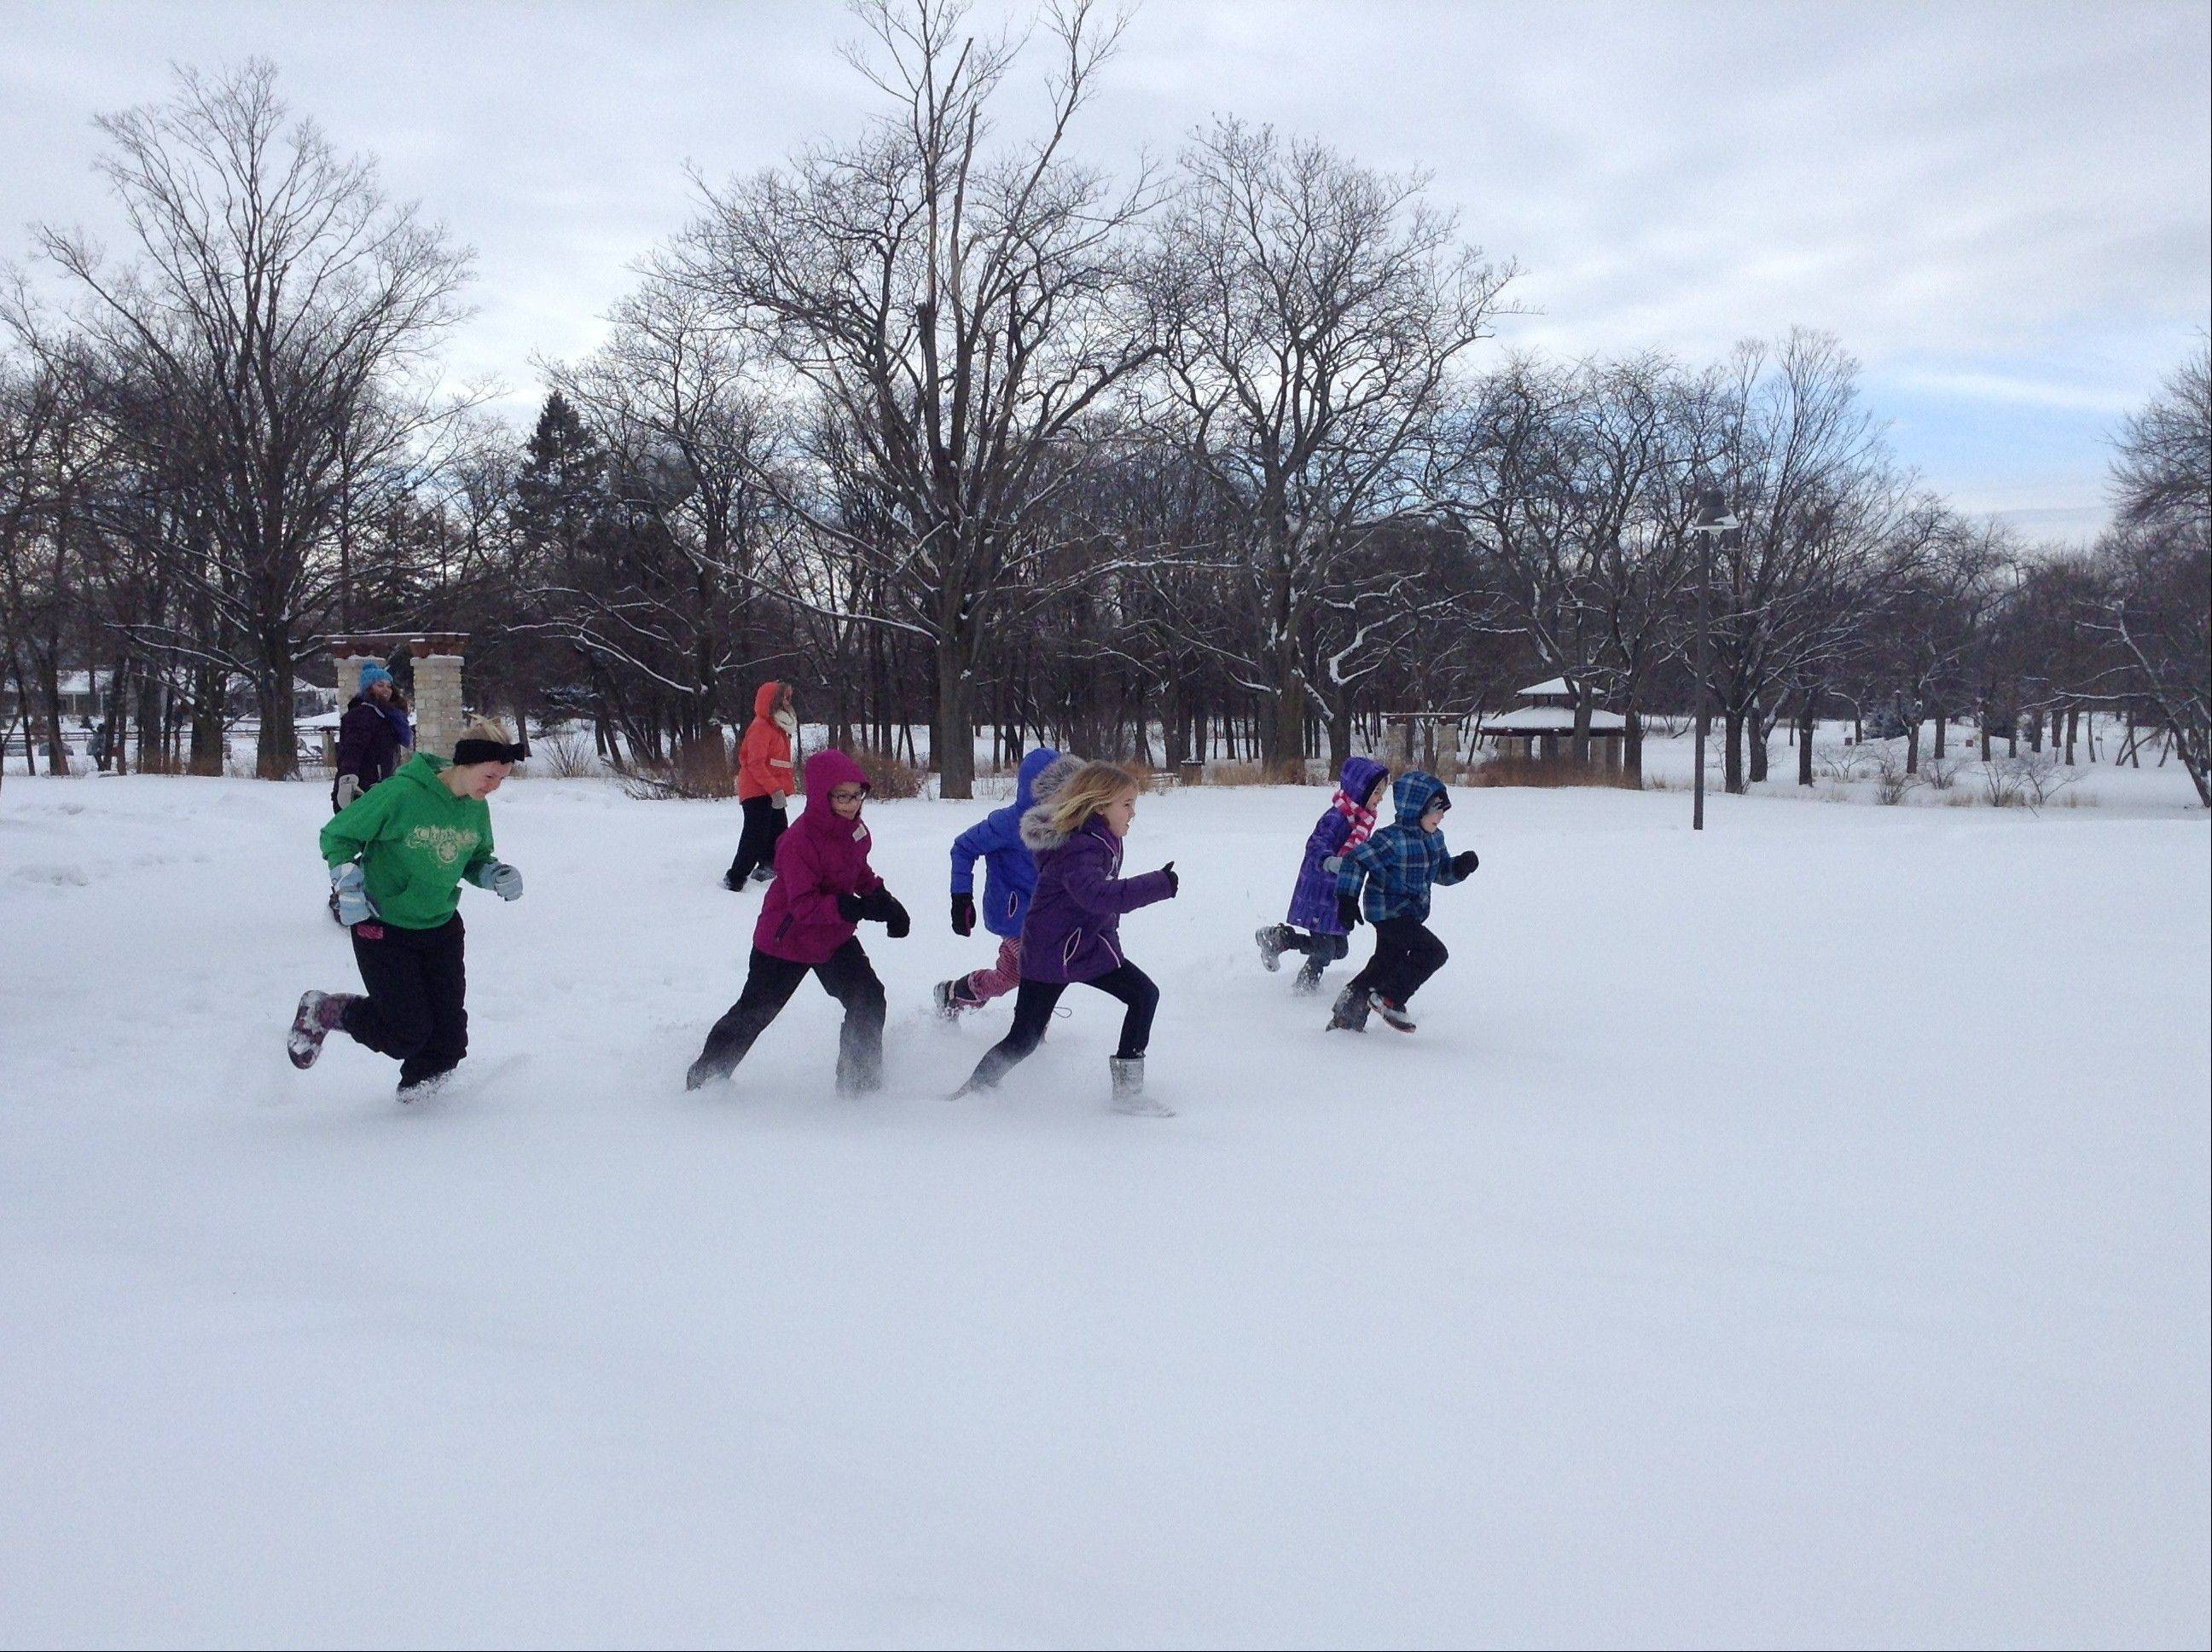 Kids collected vegetables in a relay race during Sunday's Frozen Zucchini Snowshoe Adventure in Barrington. The event is a fundraiser for Smart Farm, a local organization that promotes sustainable gardening and donates produce to food pantries.